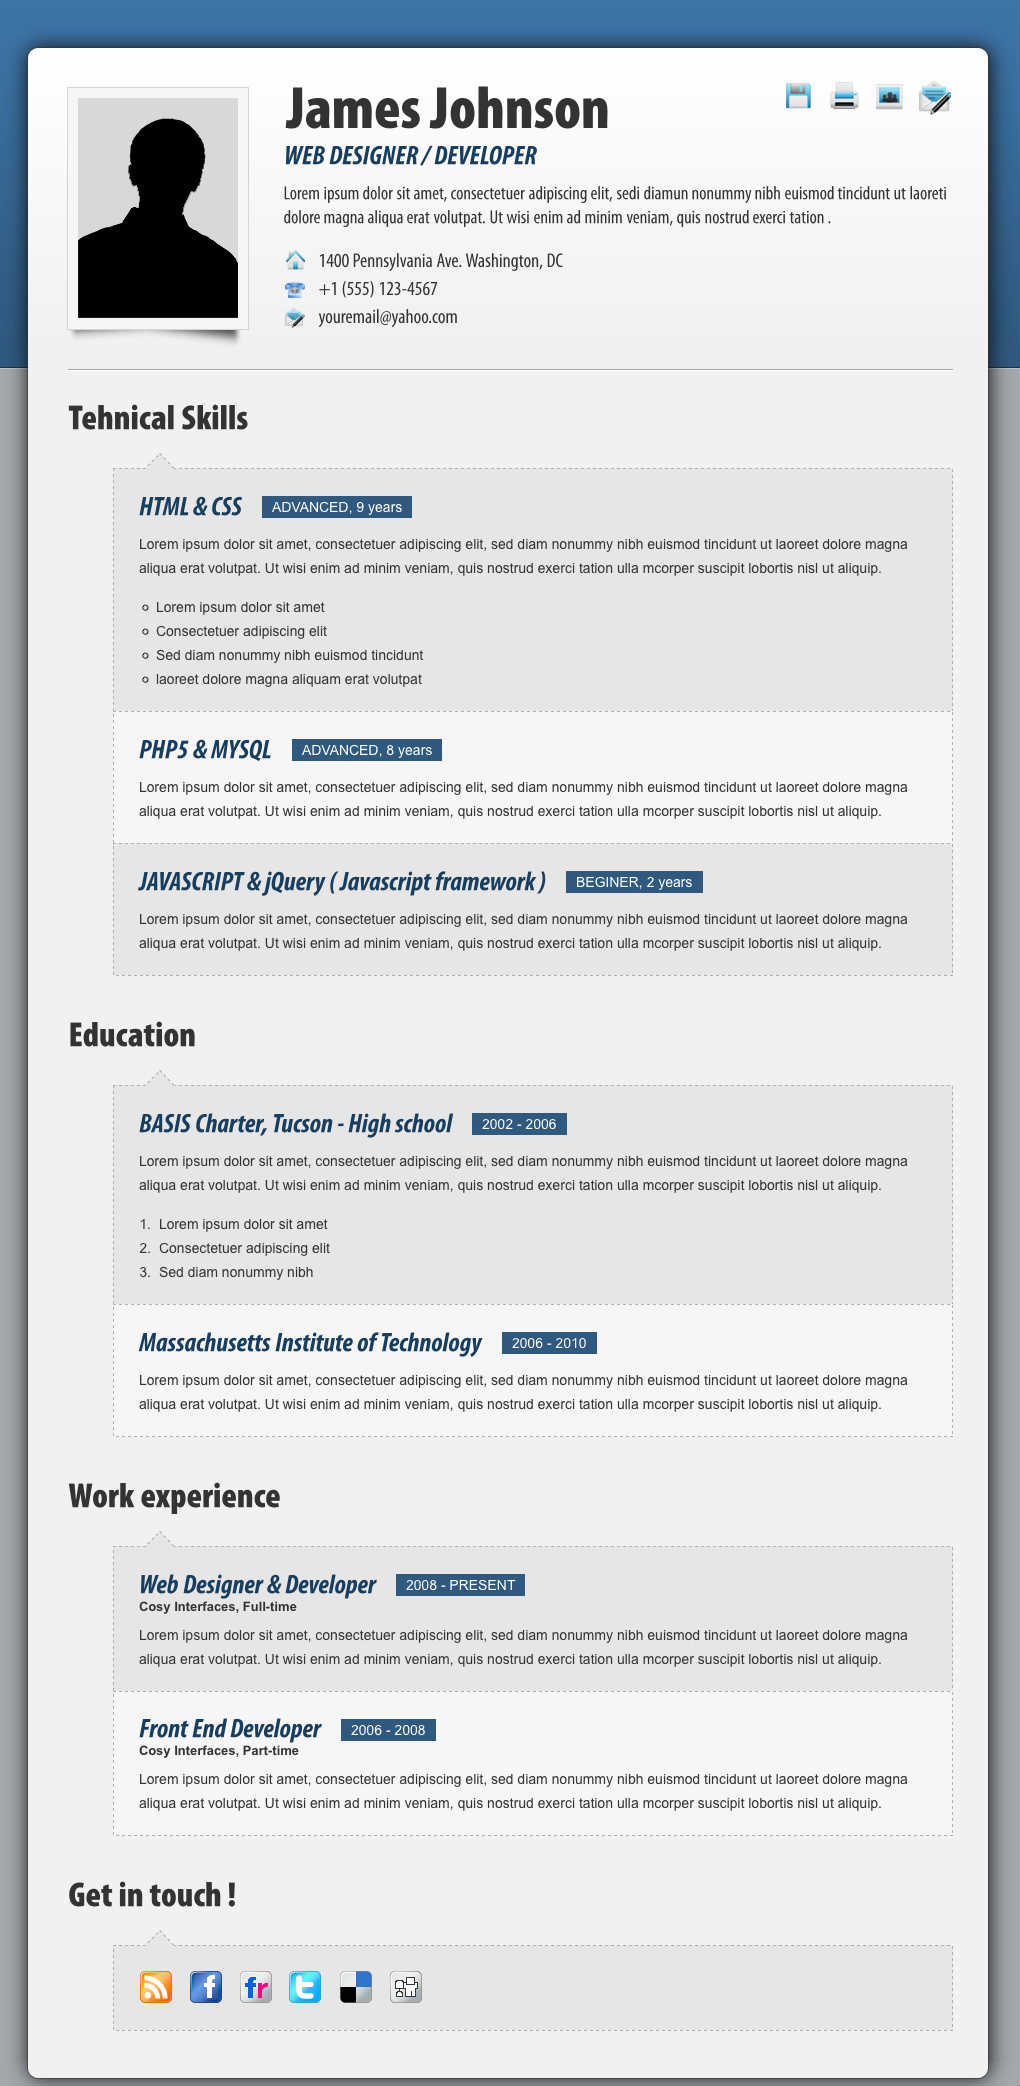 fancy resumes cover letter resume pdf template job resume template ...